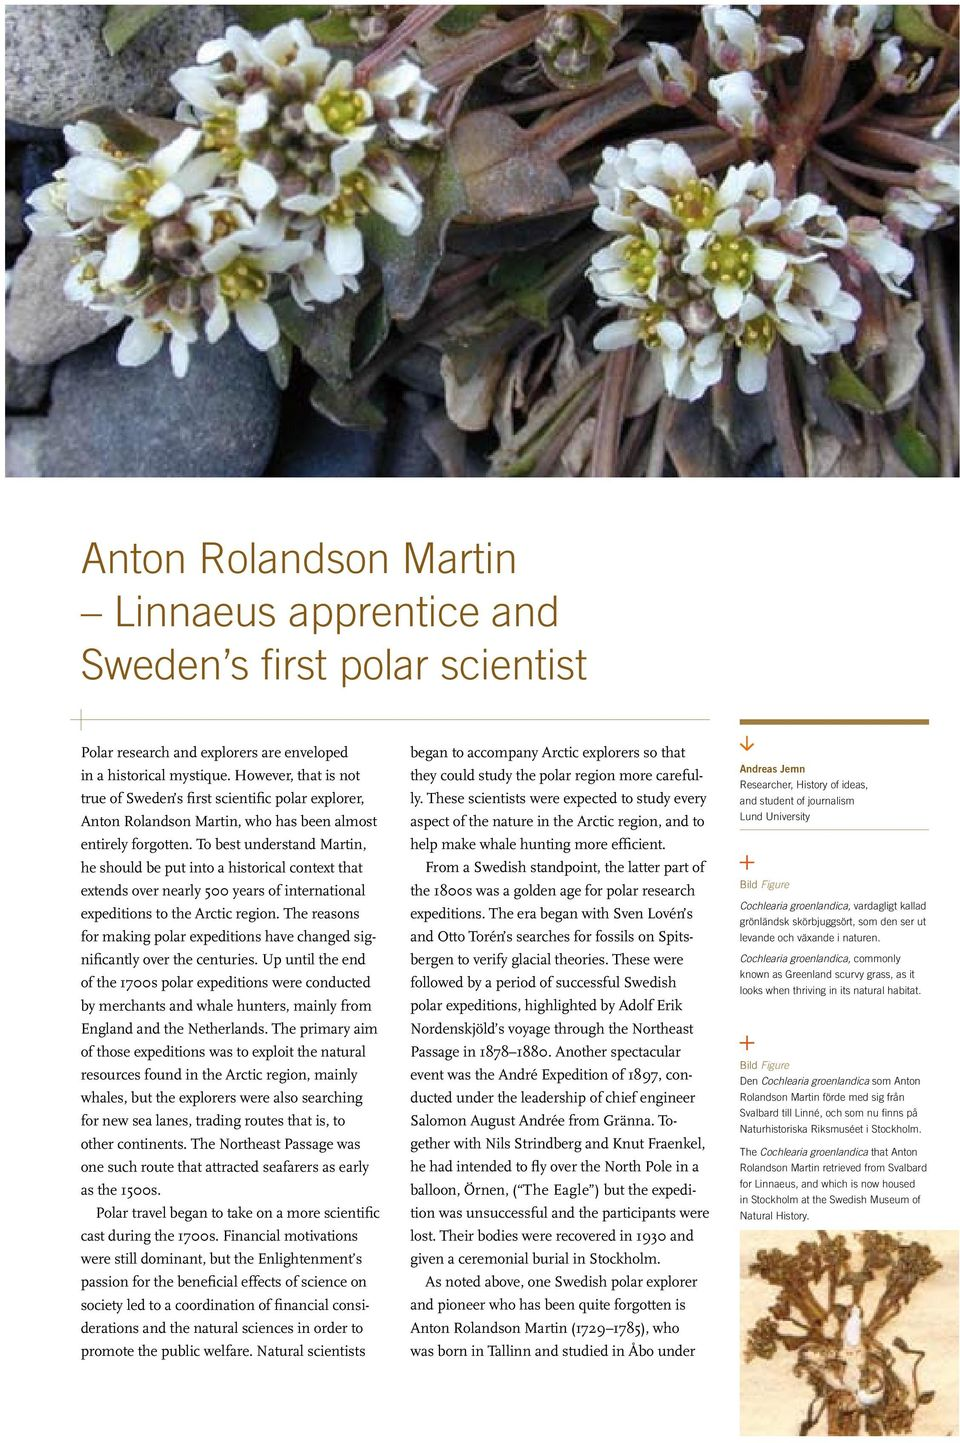 To best understand Martin, he should be put into a historical context that extends over nearly 500 years of international expeditions to the Arctic region.